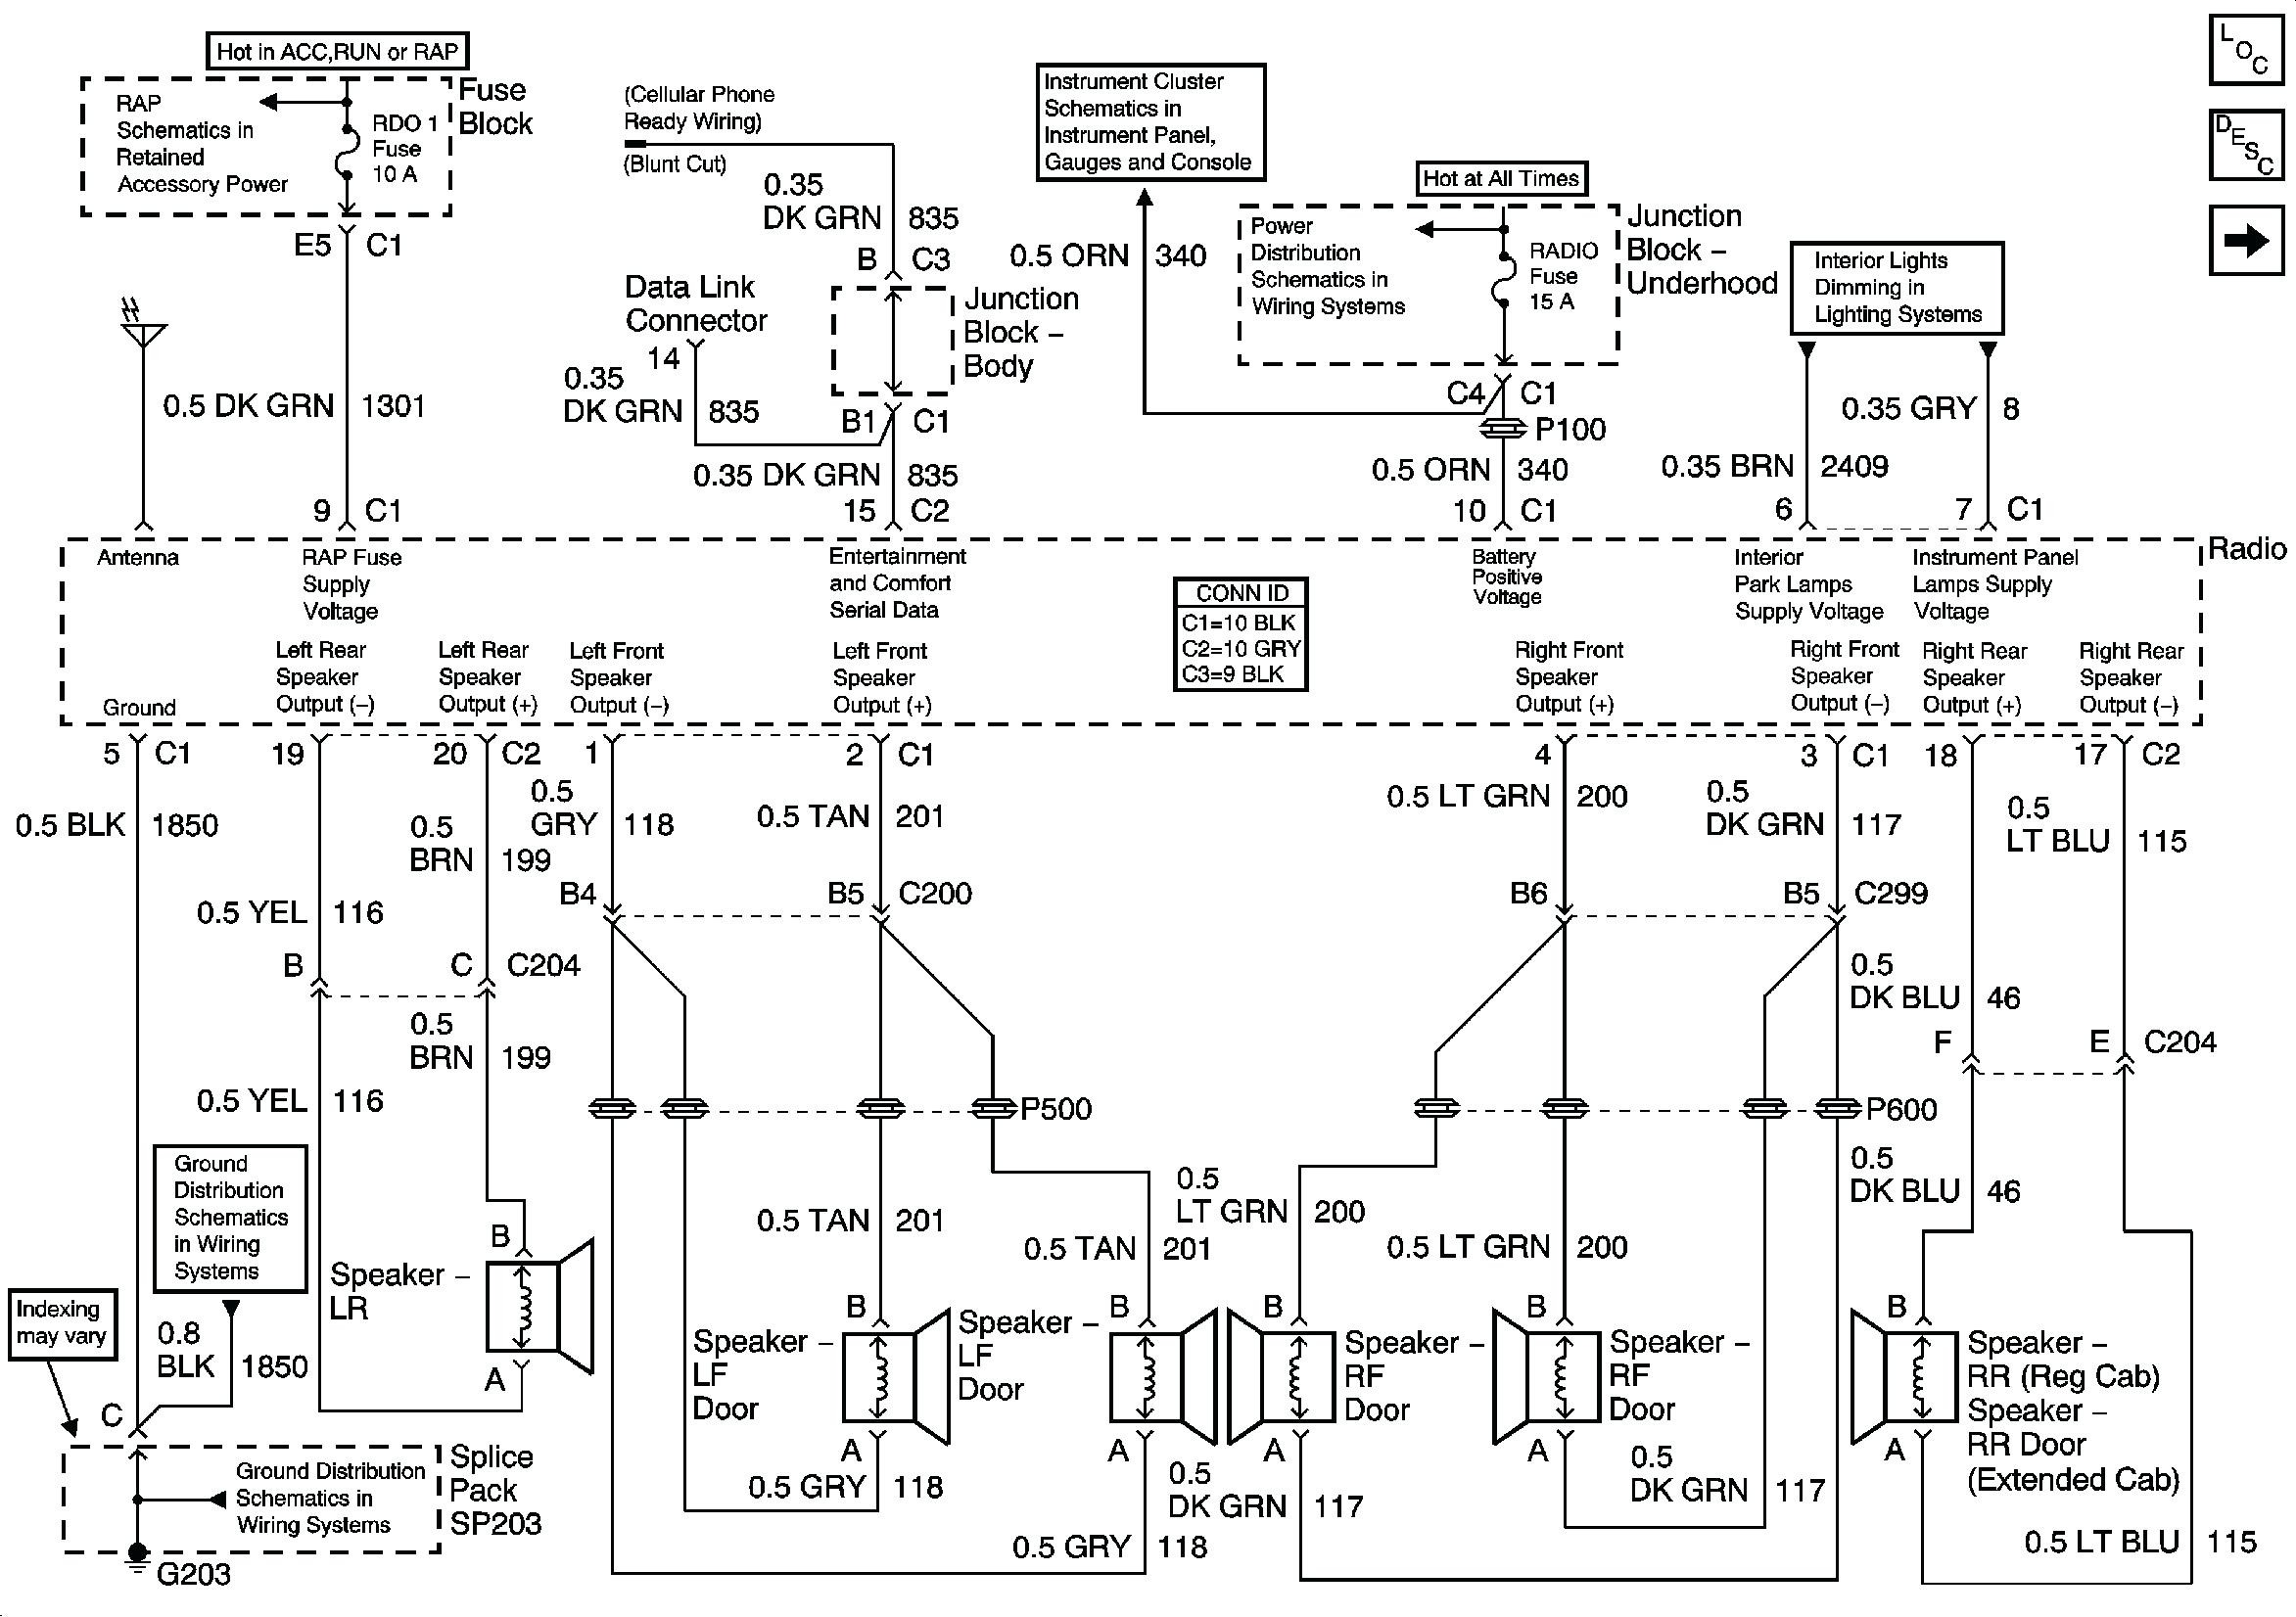 2013 Tahoe Police Package Wiring Diagram Circuit Symbols Vehicle Diagrams 2015 Chevy Example Electrical Rh 162 212 157 63